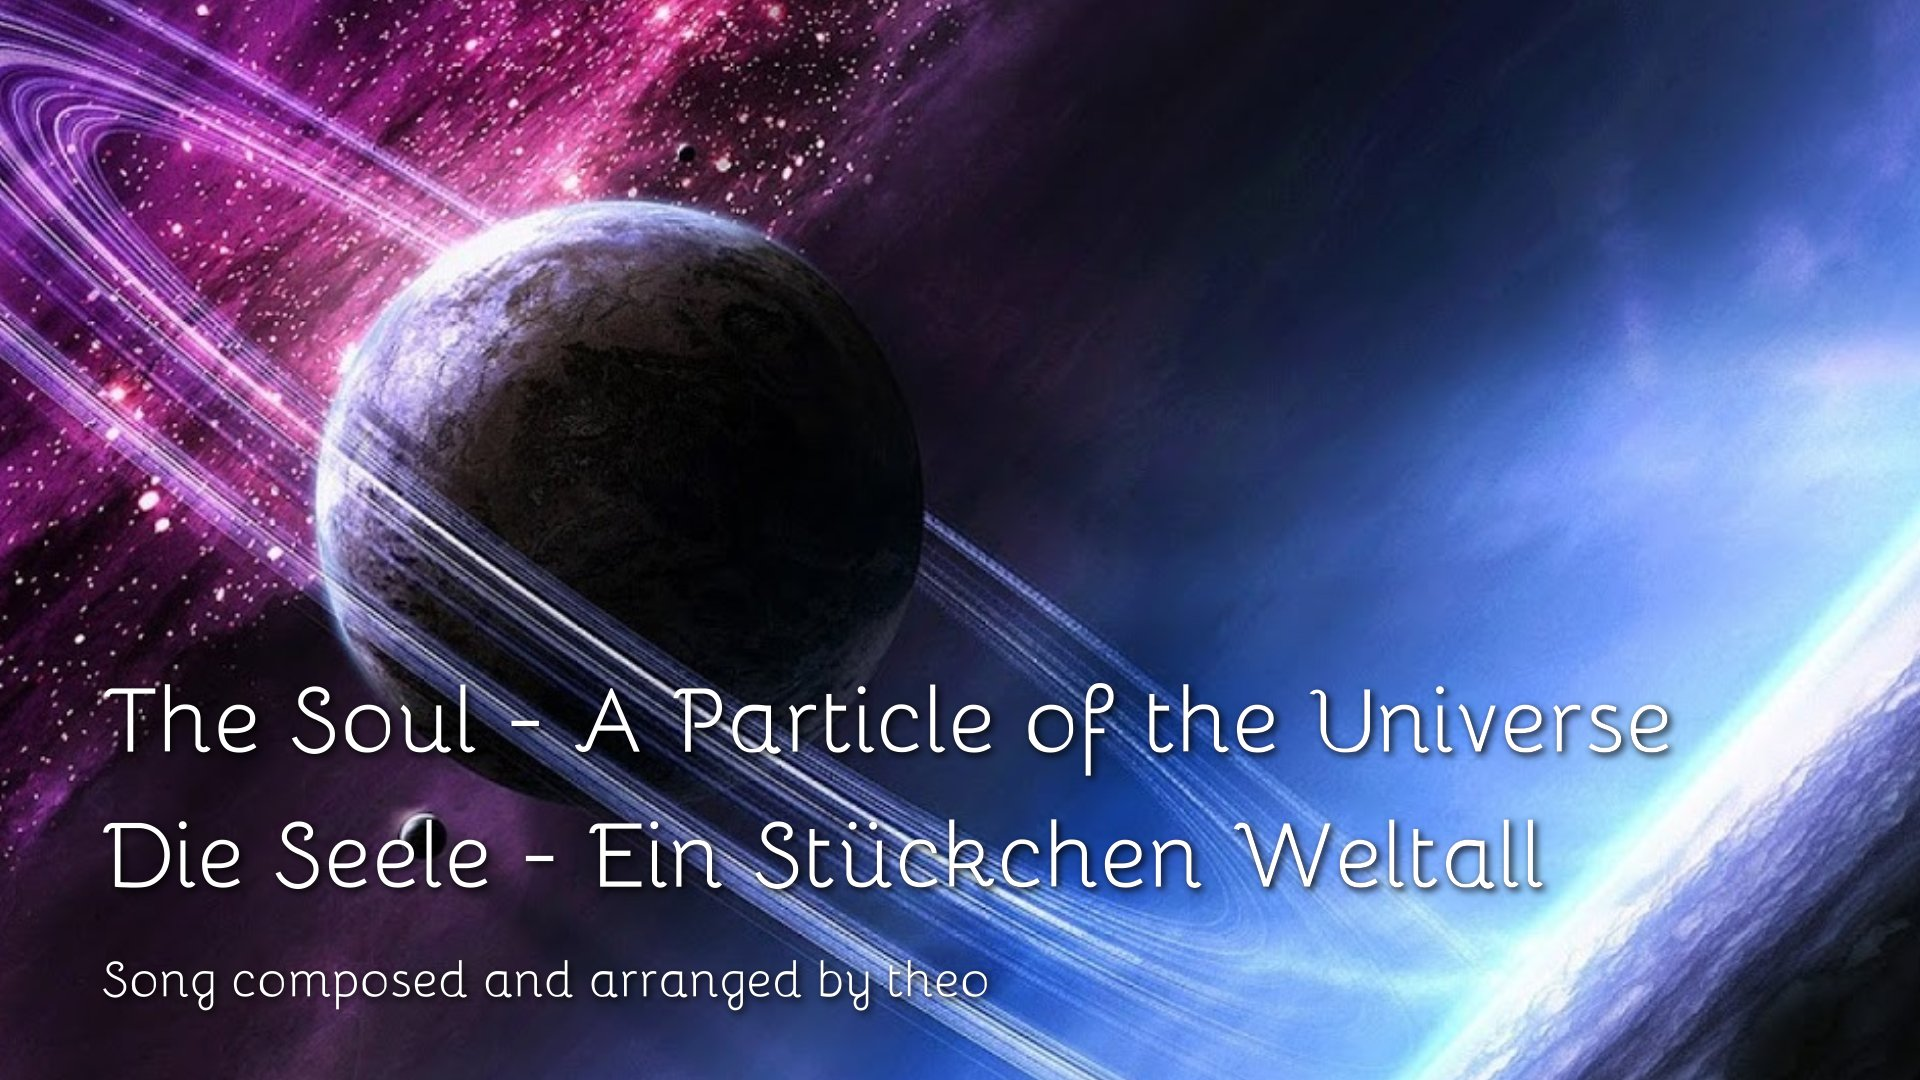 Lied-Die Seele-Ein Stueckchen Weltall-Song-The Soul-A Particle of the Universe-1920